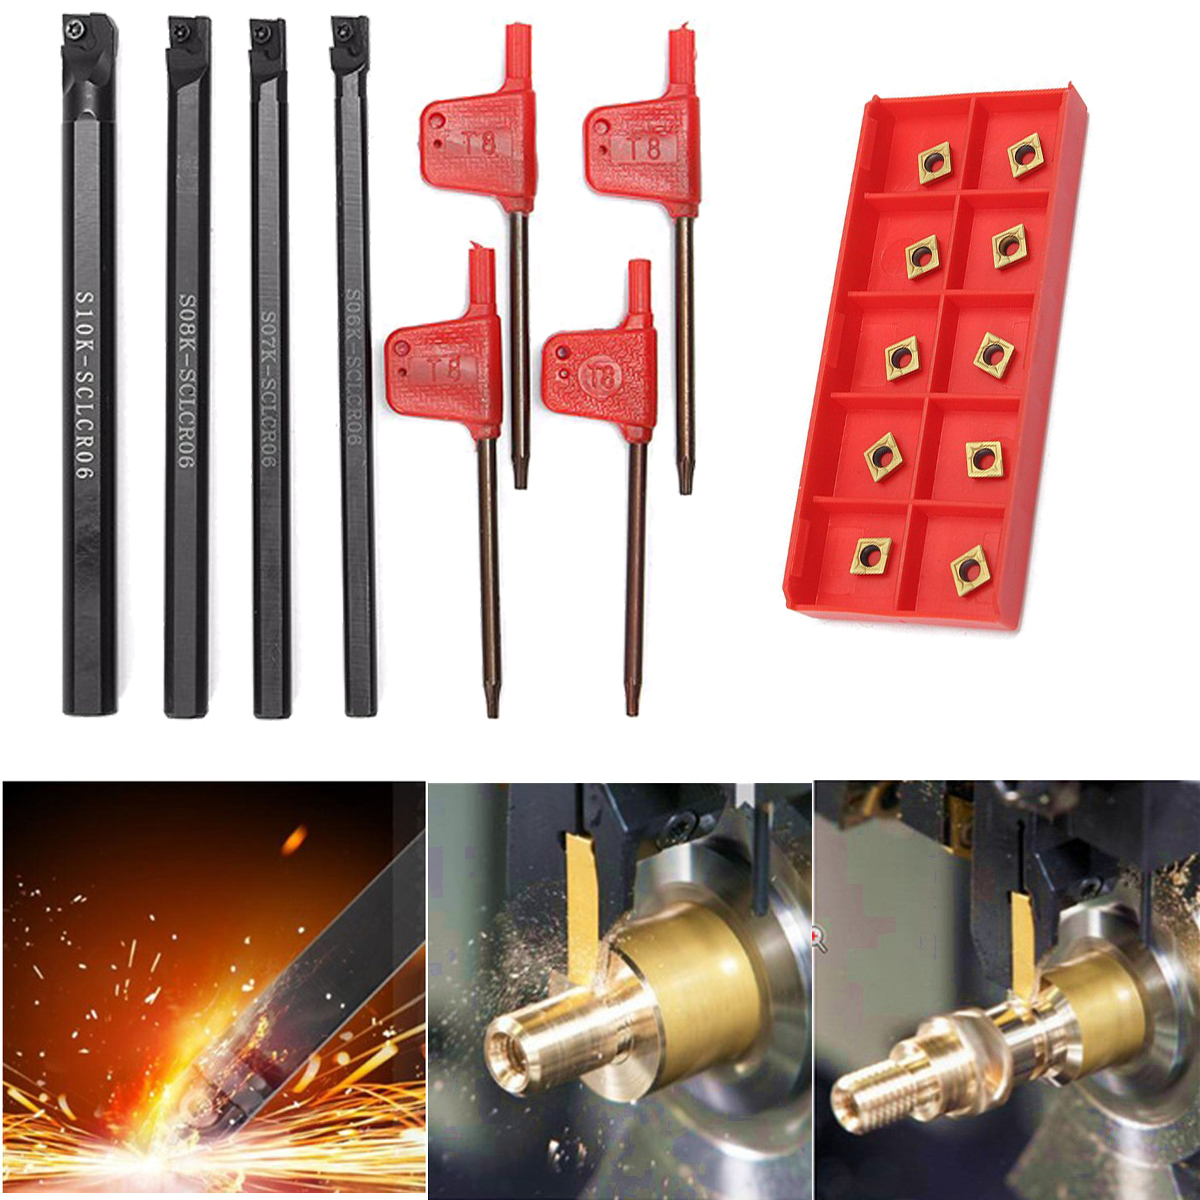 New Arrival 6/7/8/10mm SCLCR06 Turning Tools Lathe Boring Bar + T8 Wrenchs + 10 CCMT060204-HM Insert Set free shiping1pcs aju c10 10 100 10pcs ccmt060204 dia 10mm insertable bore drilling end mill cutting tools arbor for ccmt060204